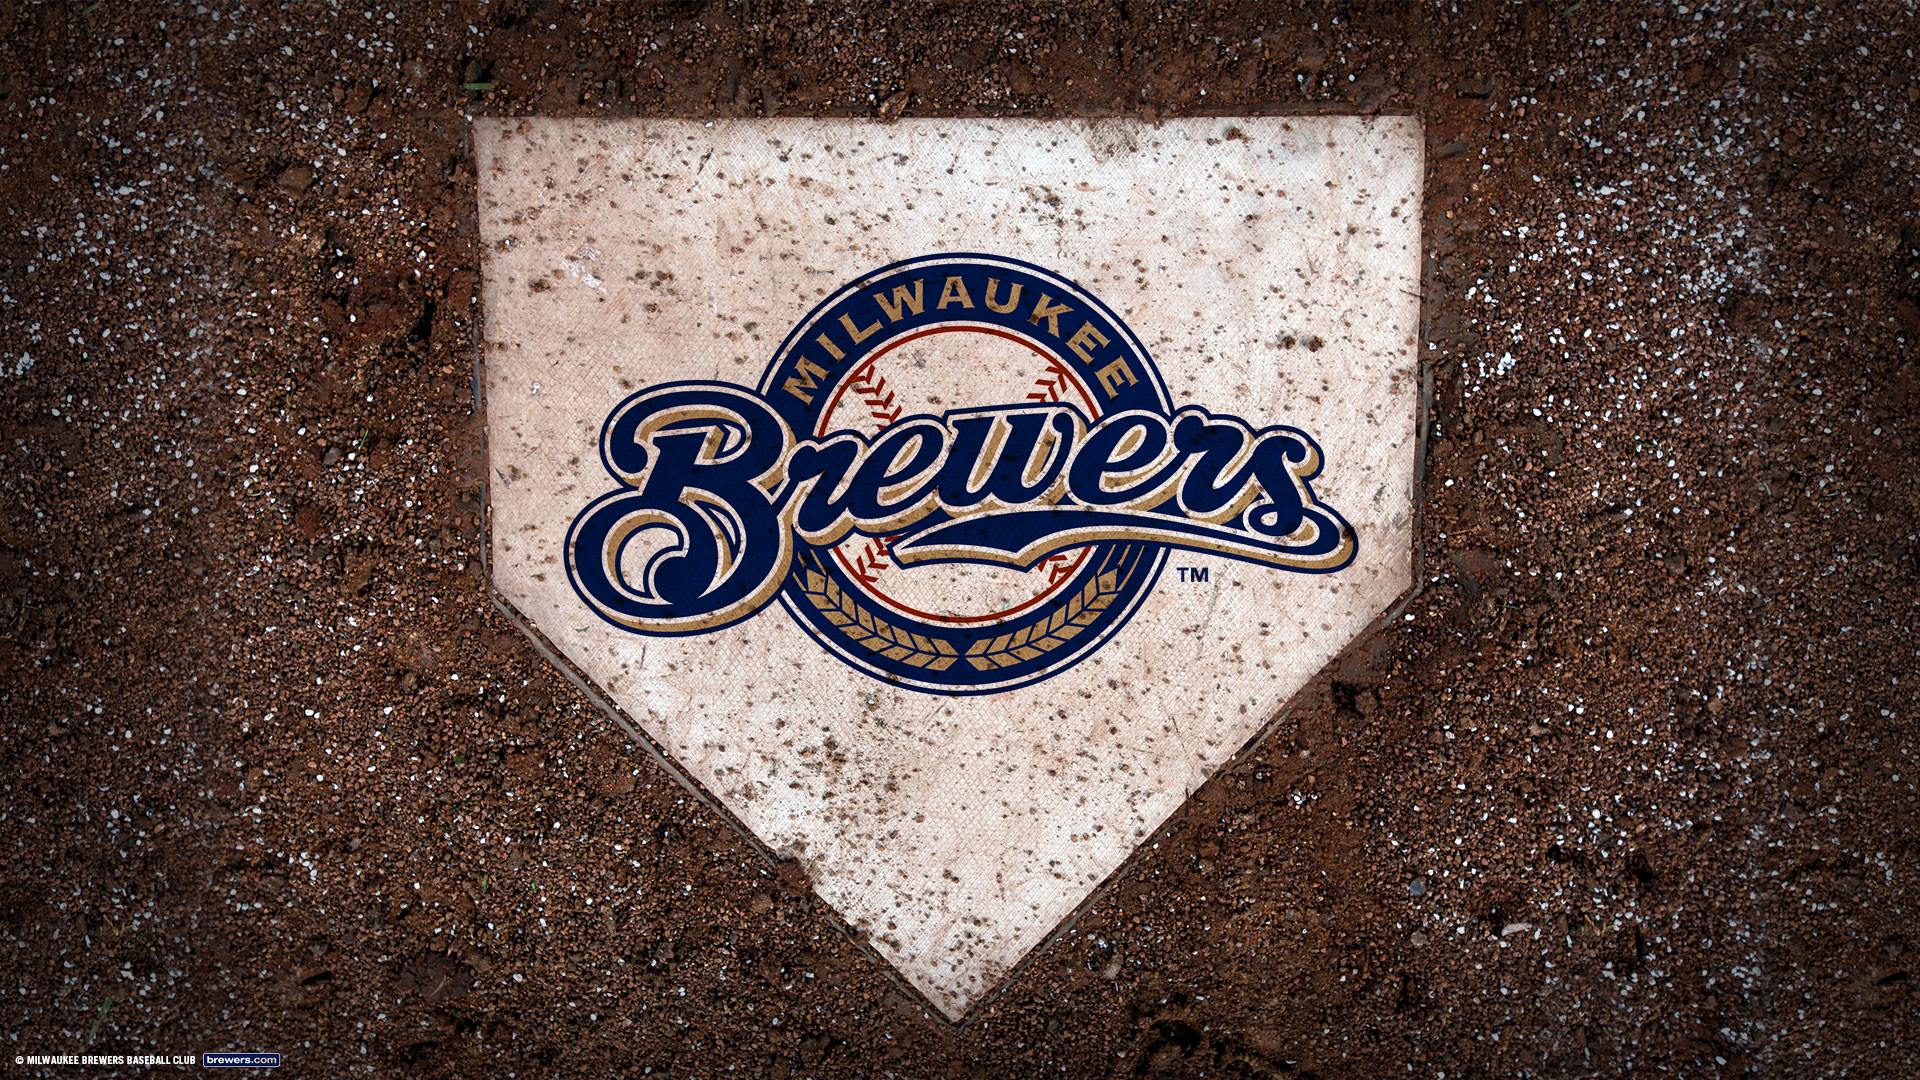 1920x1080 Widescreen Wallpapers: Brewers Logo, (, V.43) - KB.